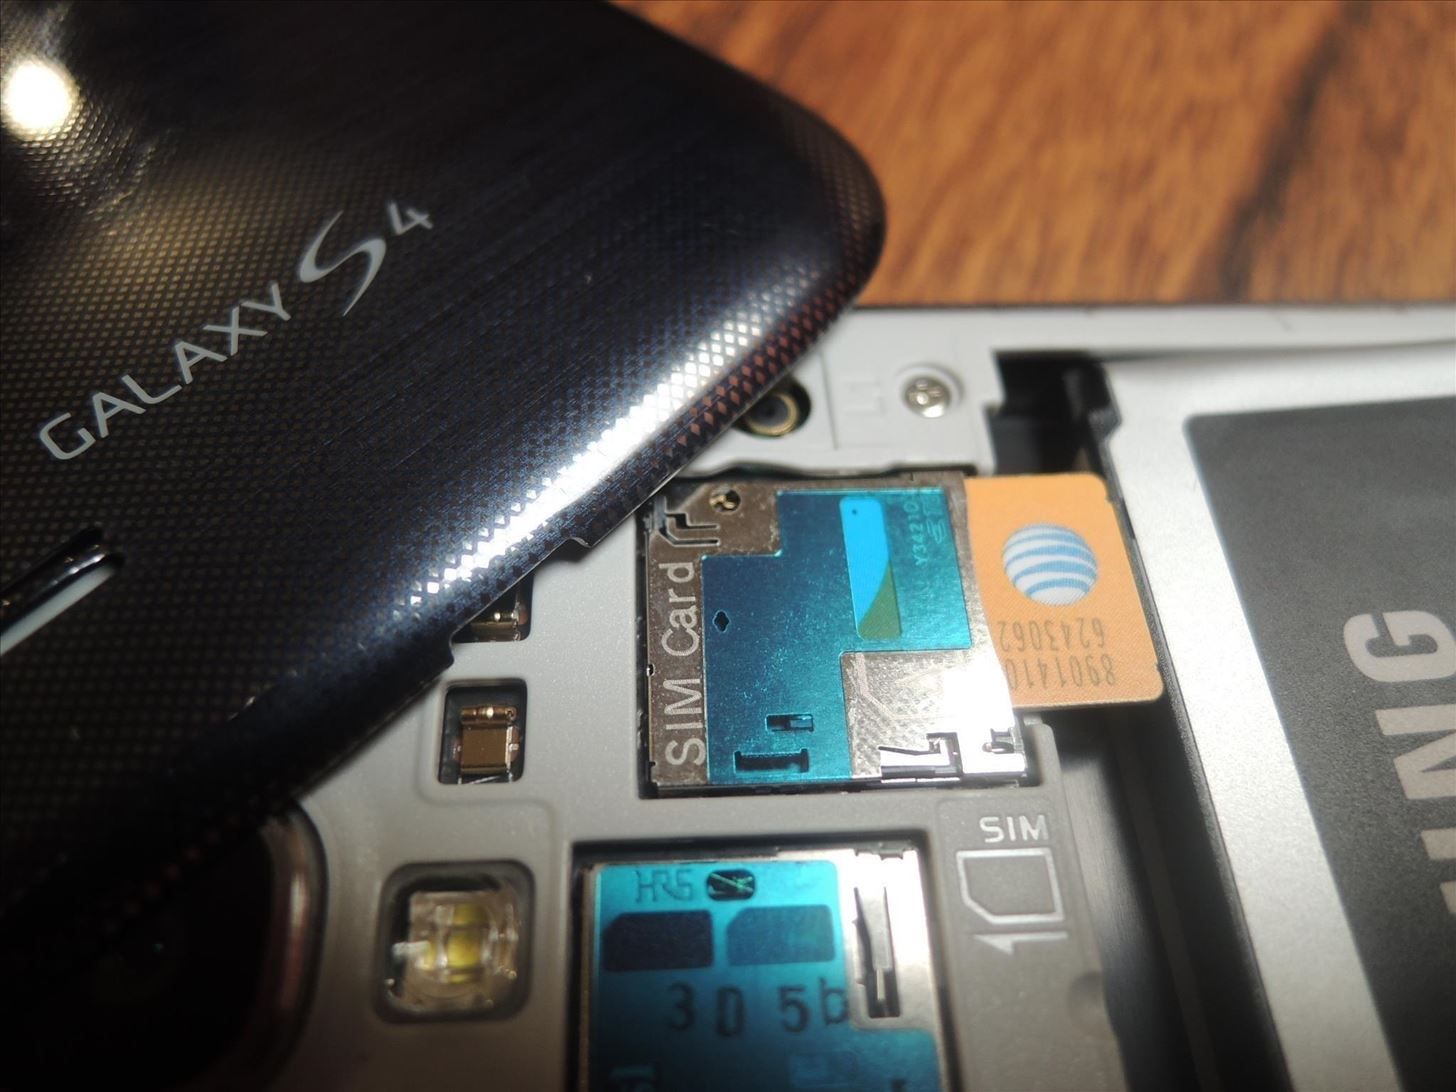 How to Carrier Unlock Your Samsung Galaxy S4 So You Can Use